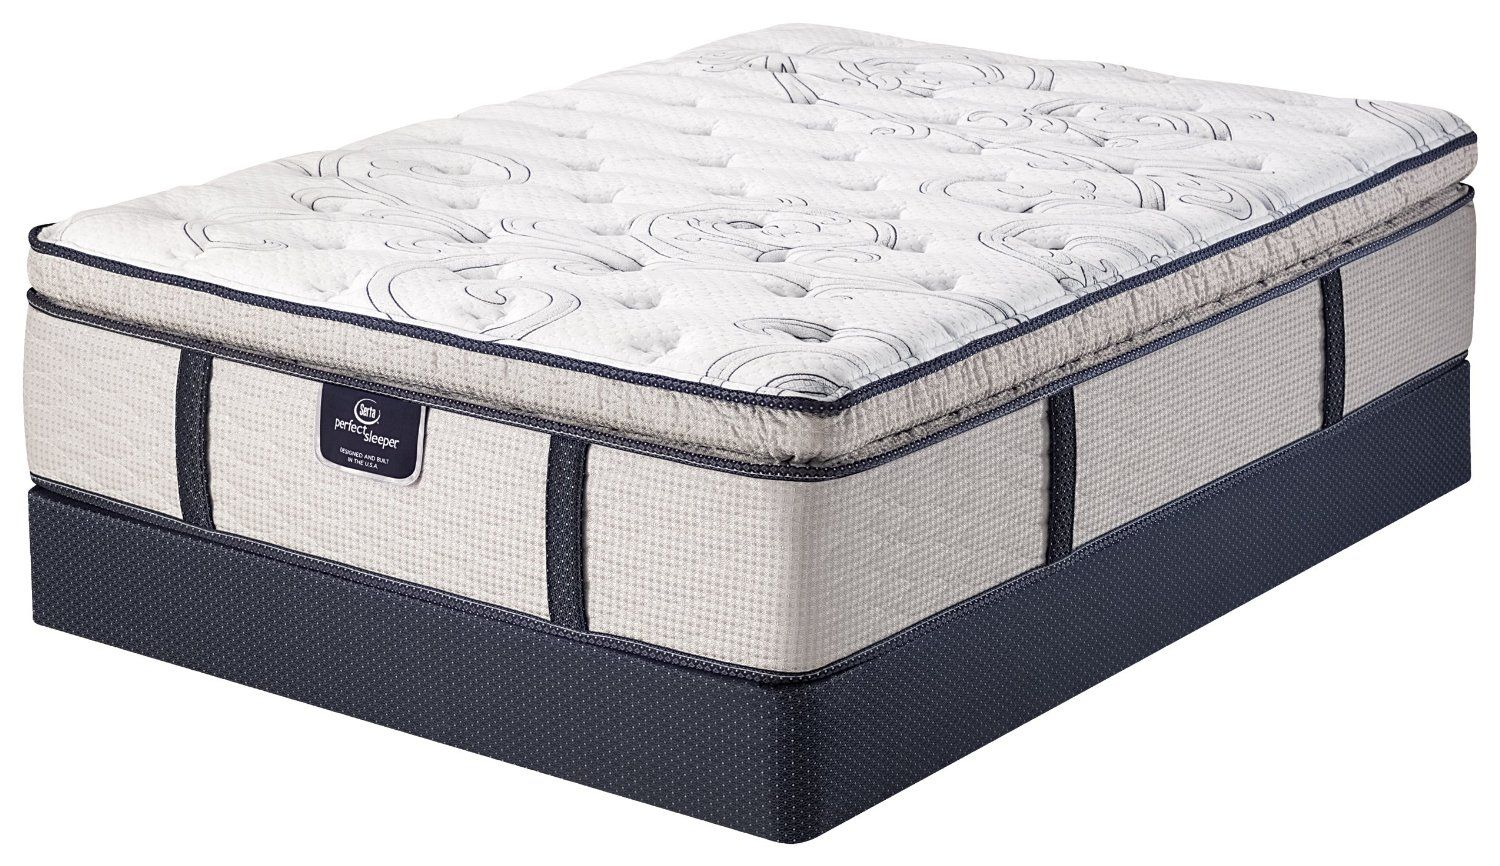 ideas mattresses mattress hybrid reviews king restonic by